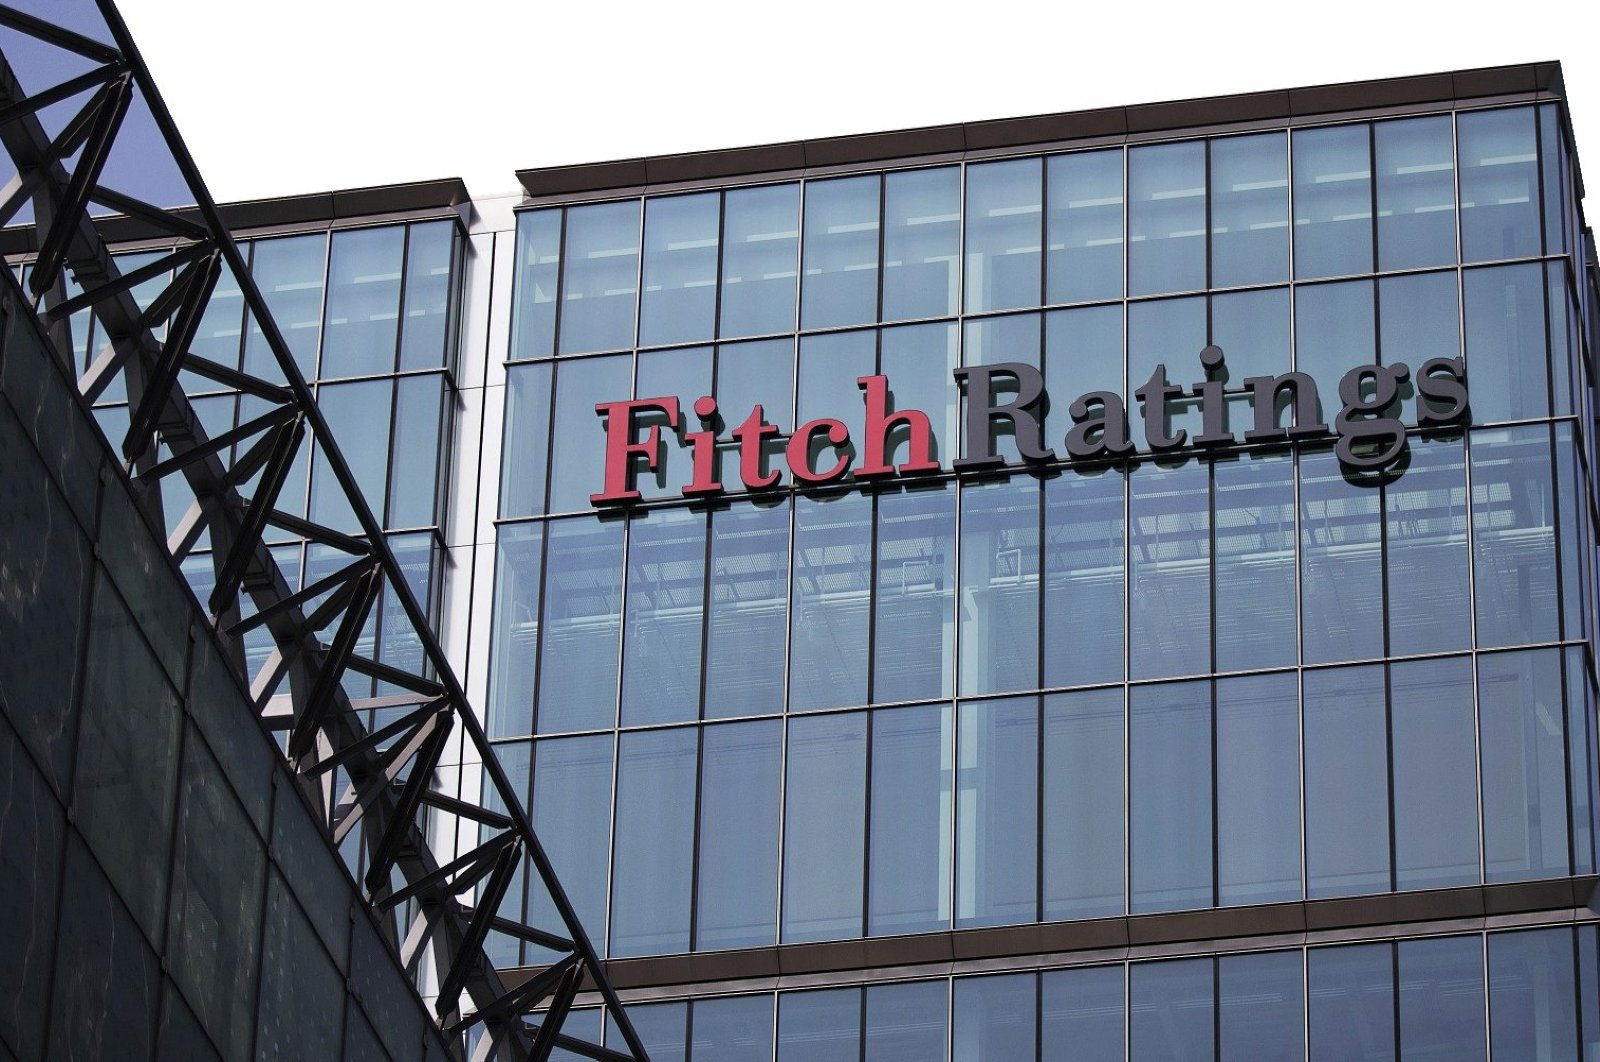 The headquarters of Fitch Ratings Ltd. stands in the Canary Wharf business and shopping district in London, U.K., July 12, 2013. (Getty Images)